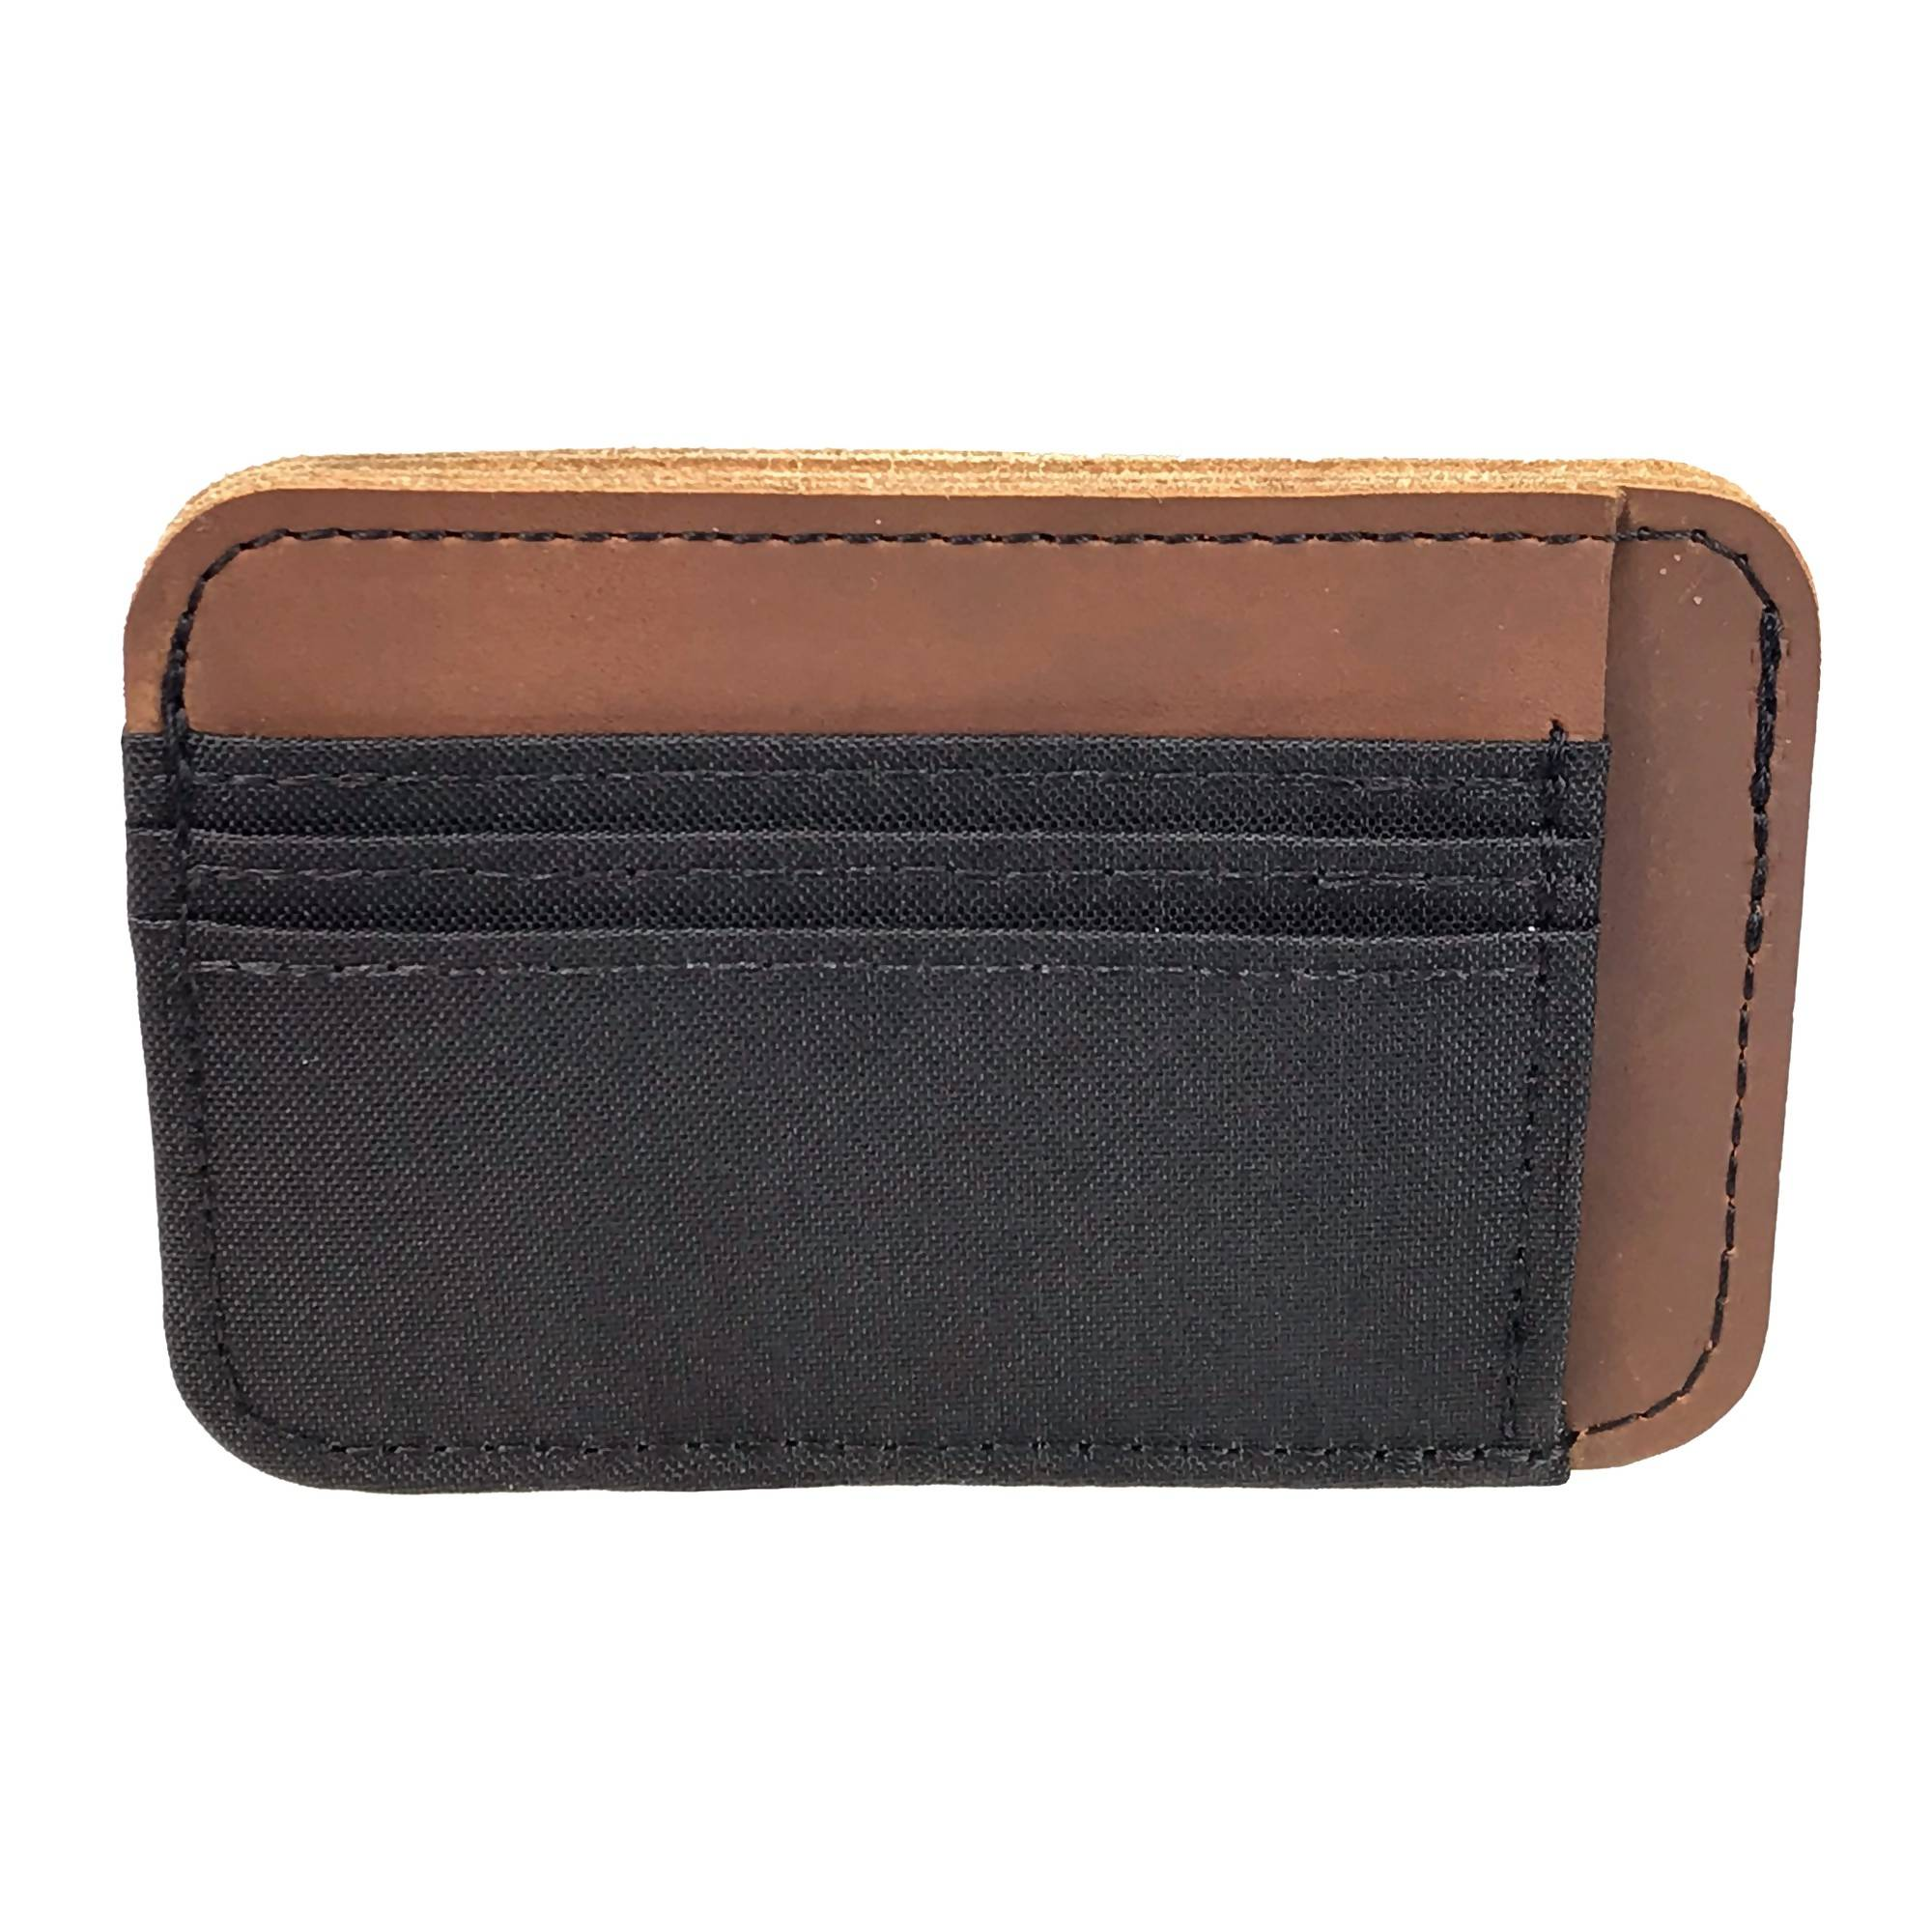 Leather & Polyester Deluxe Card Holder Wallet